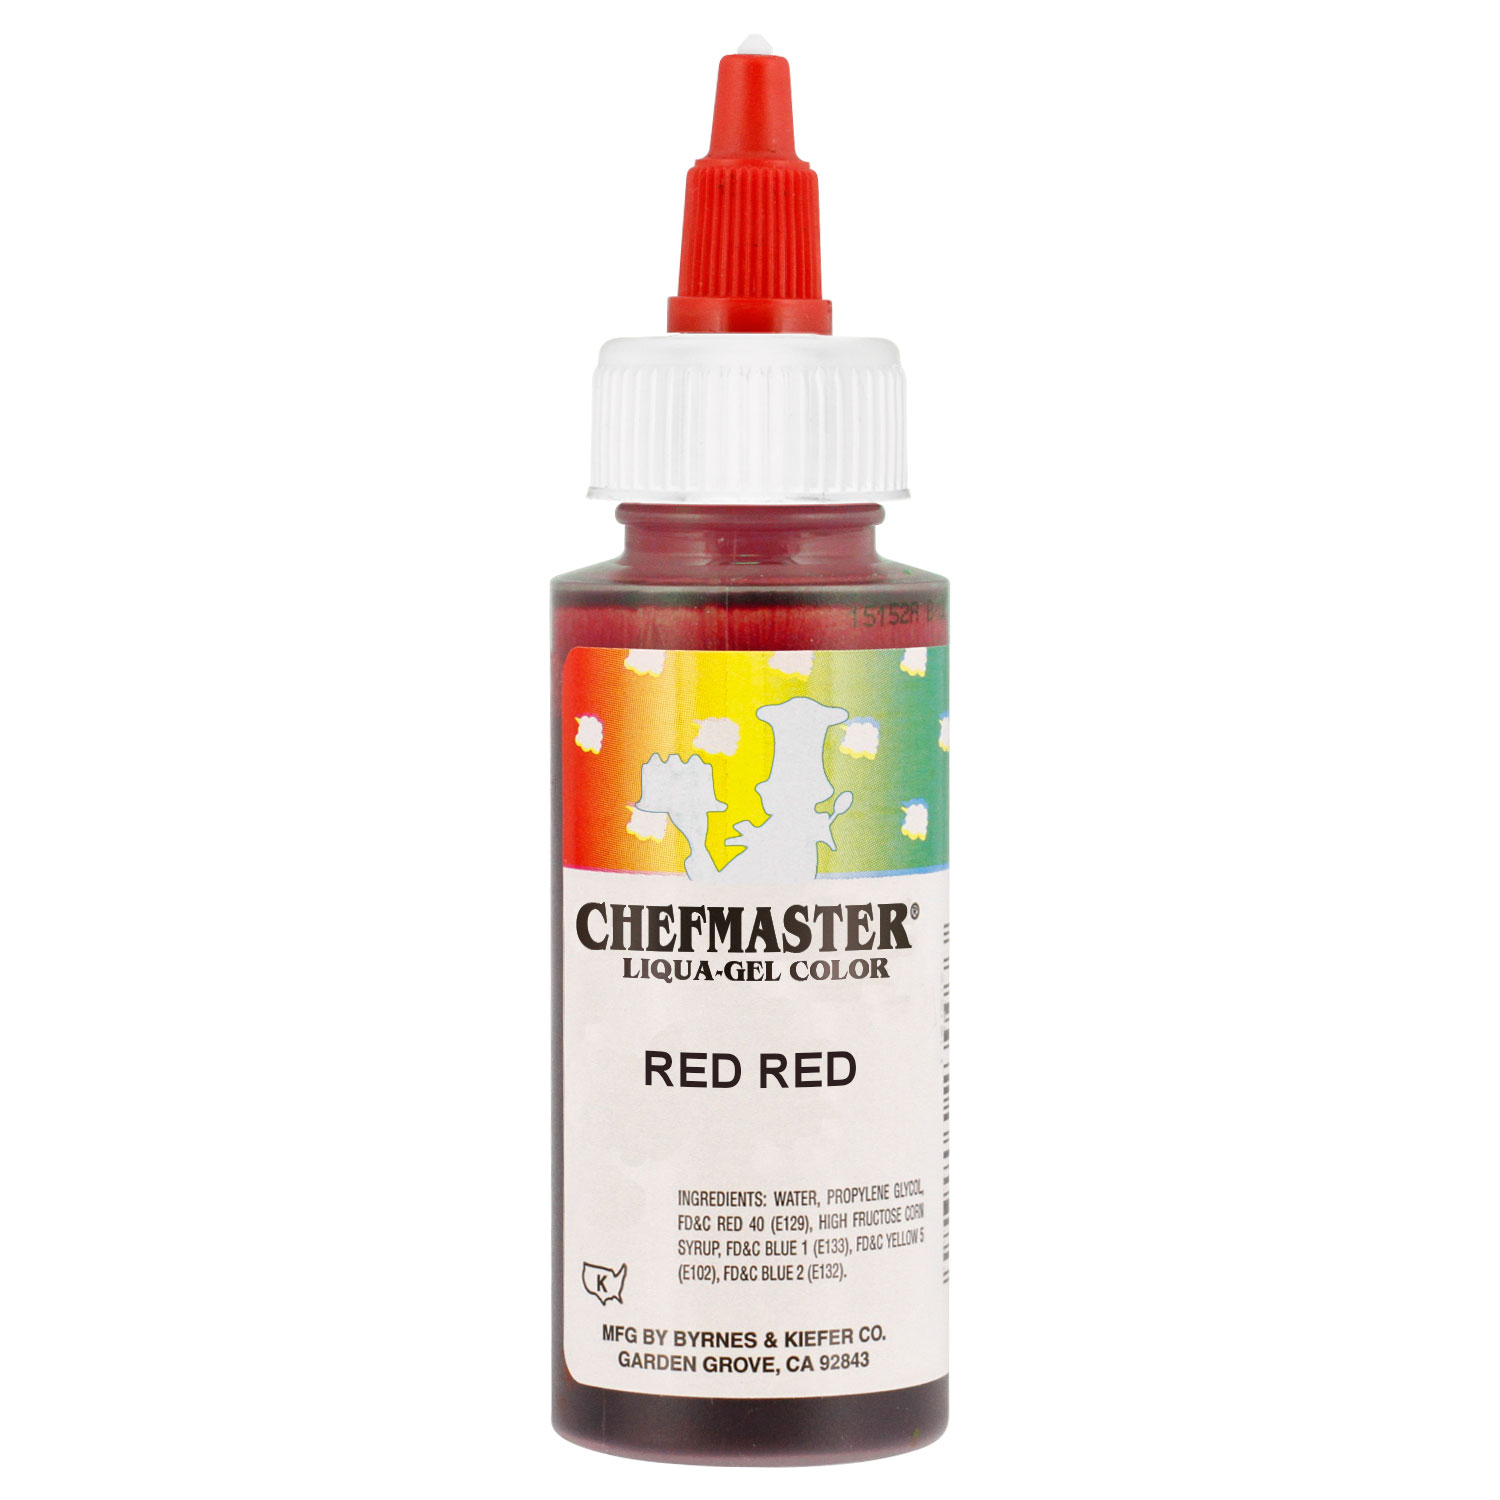 Chefmaster by US Cake Supply 2.3-Ounce Red Red Liqua-Gel Cake Food ...